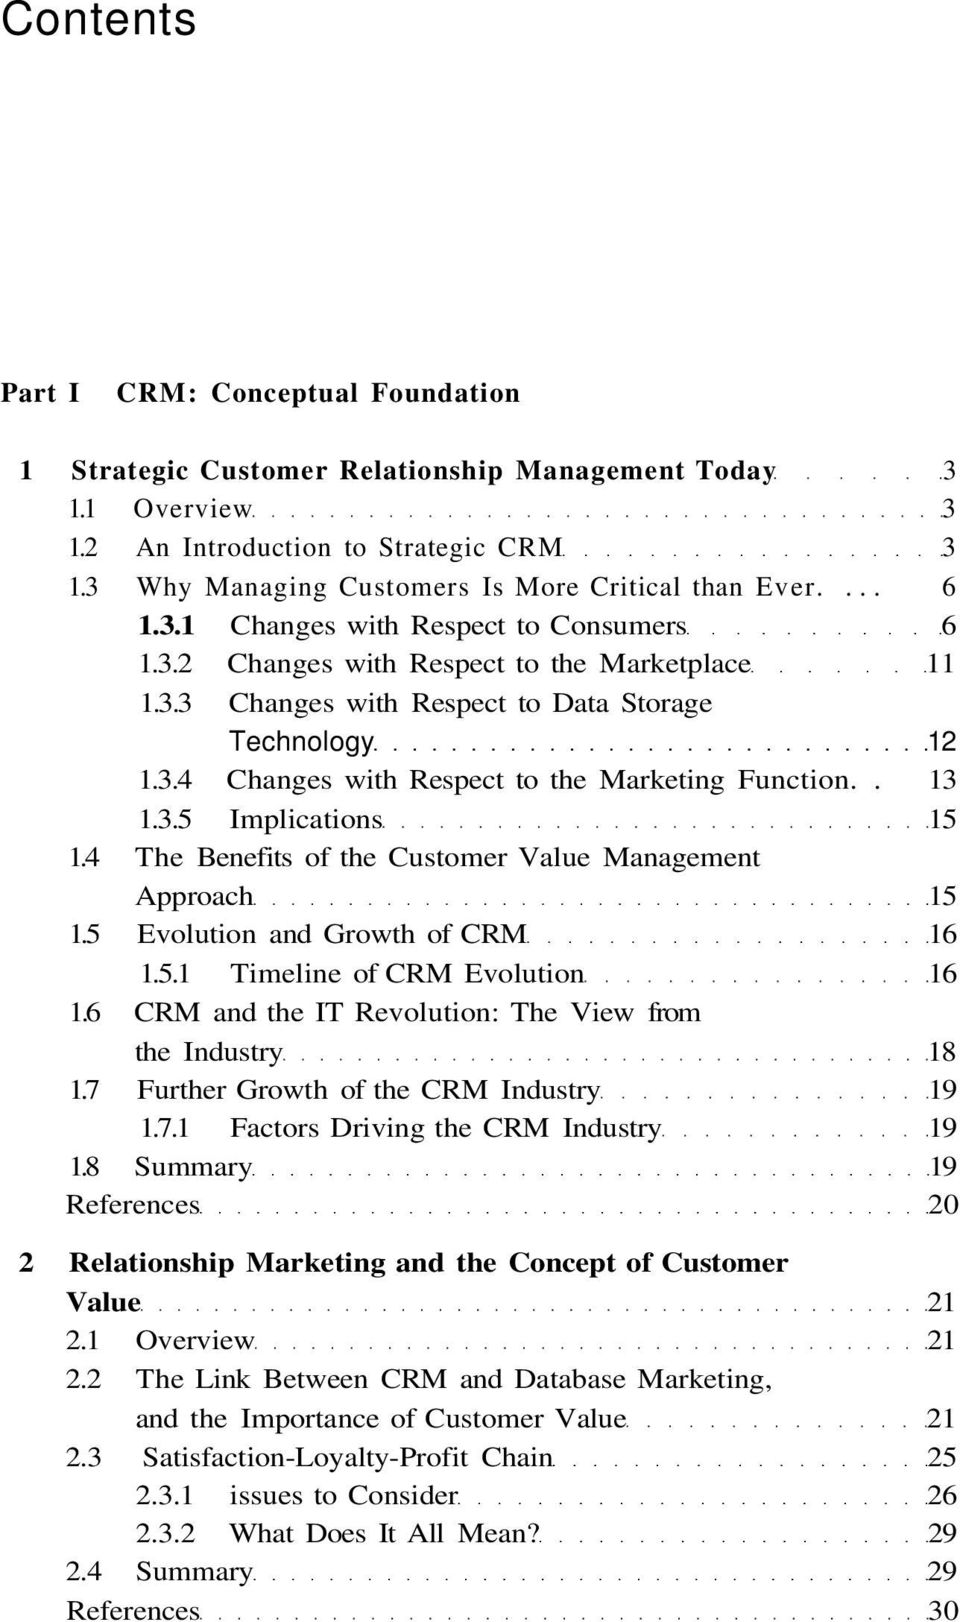 . 13 1.3.5 Implications 15 1.4 The Benefits of the Customer Value Management Approach 15 1.5 Evolution and Growth of CRM 16 1.5.1 Timeline of CRM Evolution 16 1.